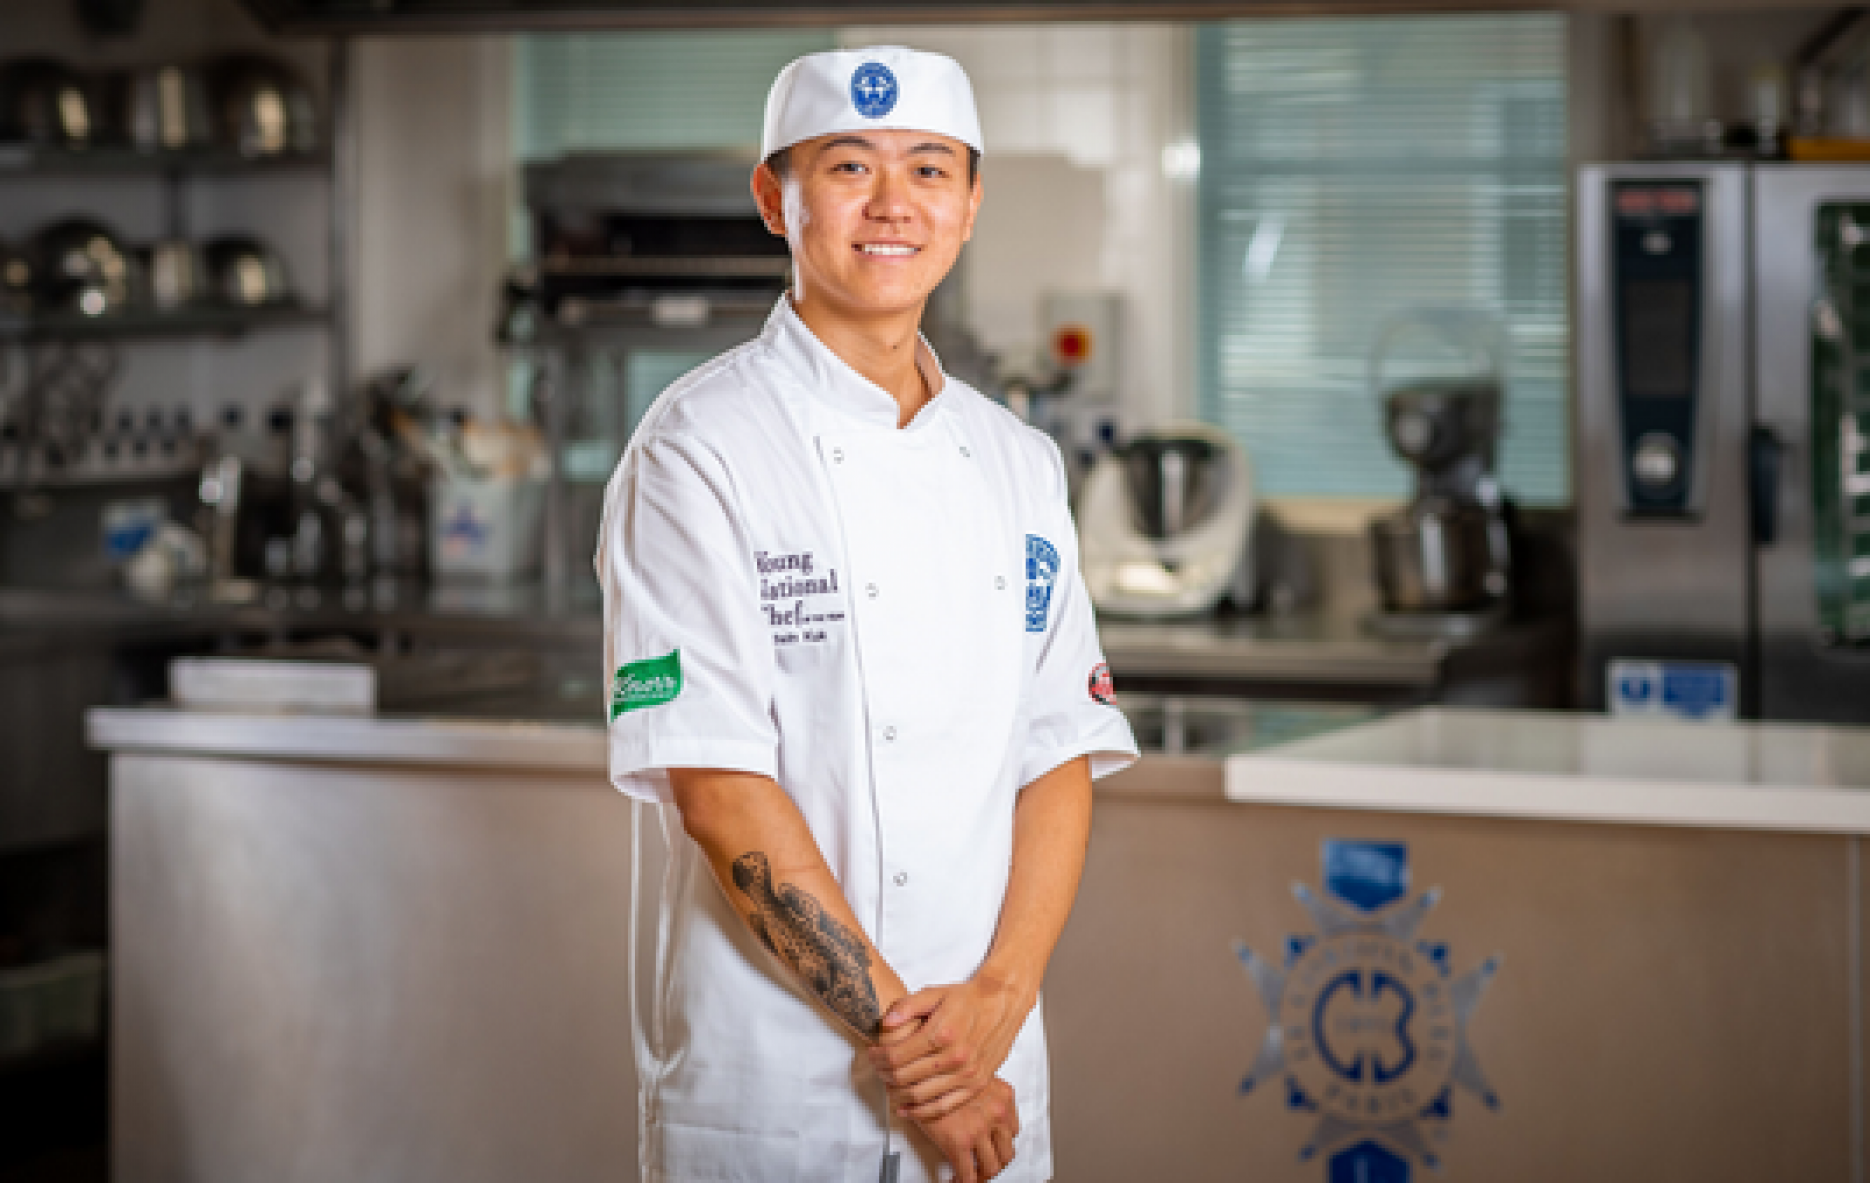 Edwin Kuk wins Young National Chef of the Year final